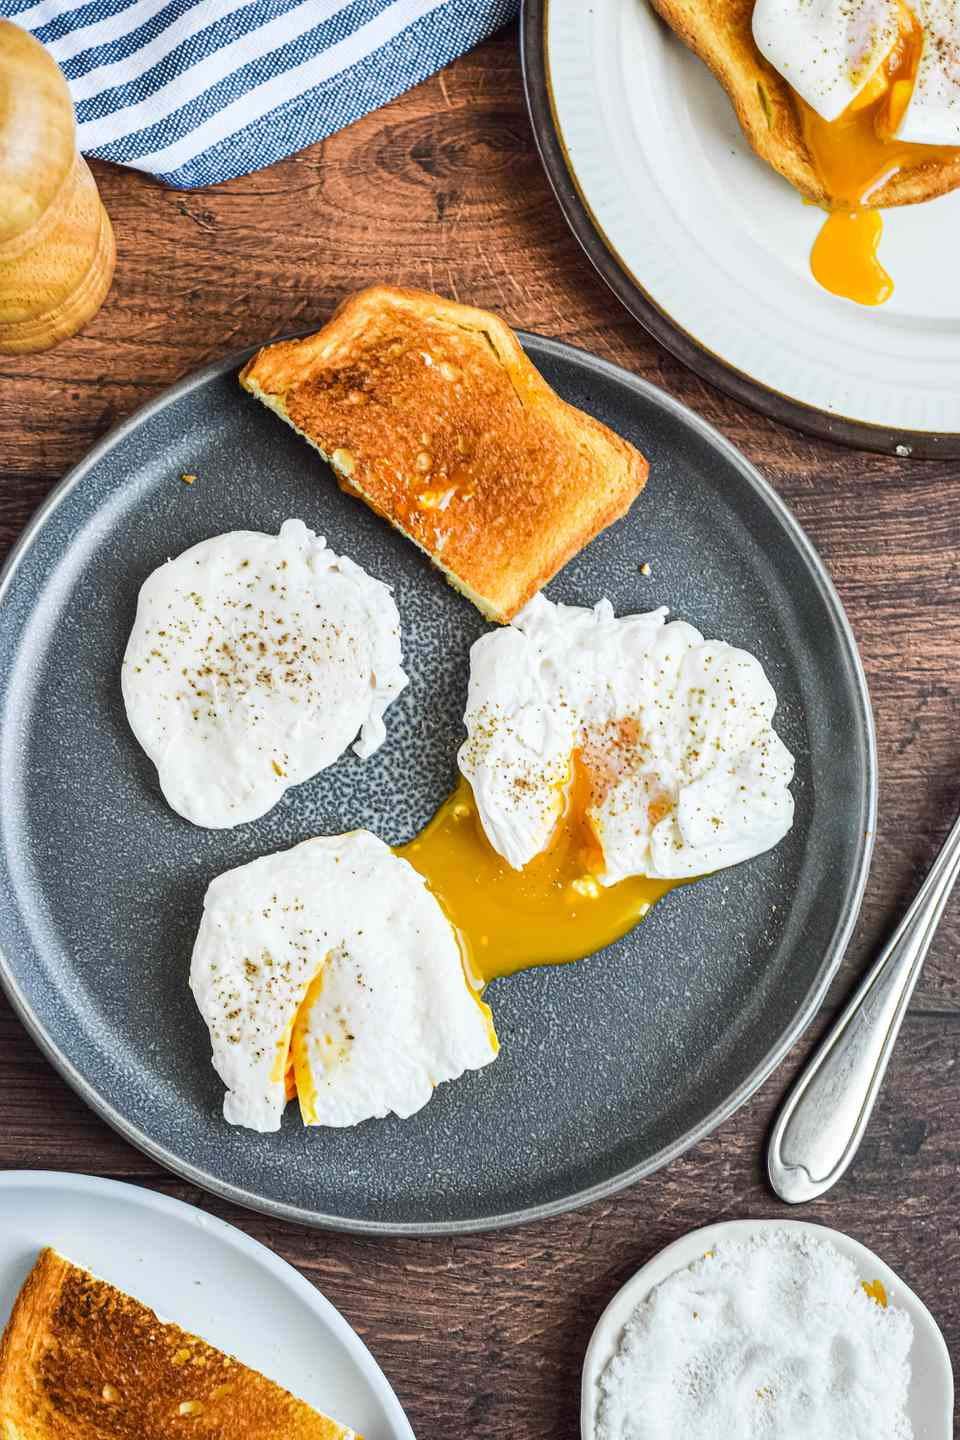 Three poached eggs and a piece of toast on a table with linens, plates, forks, and pepper grinder.